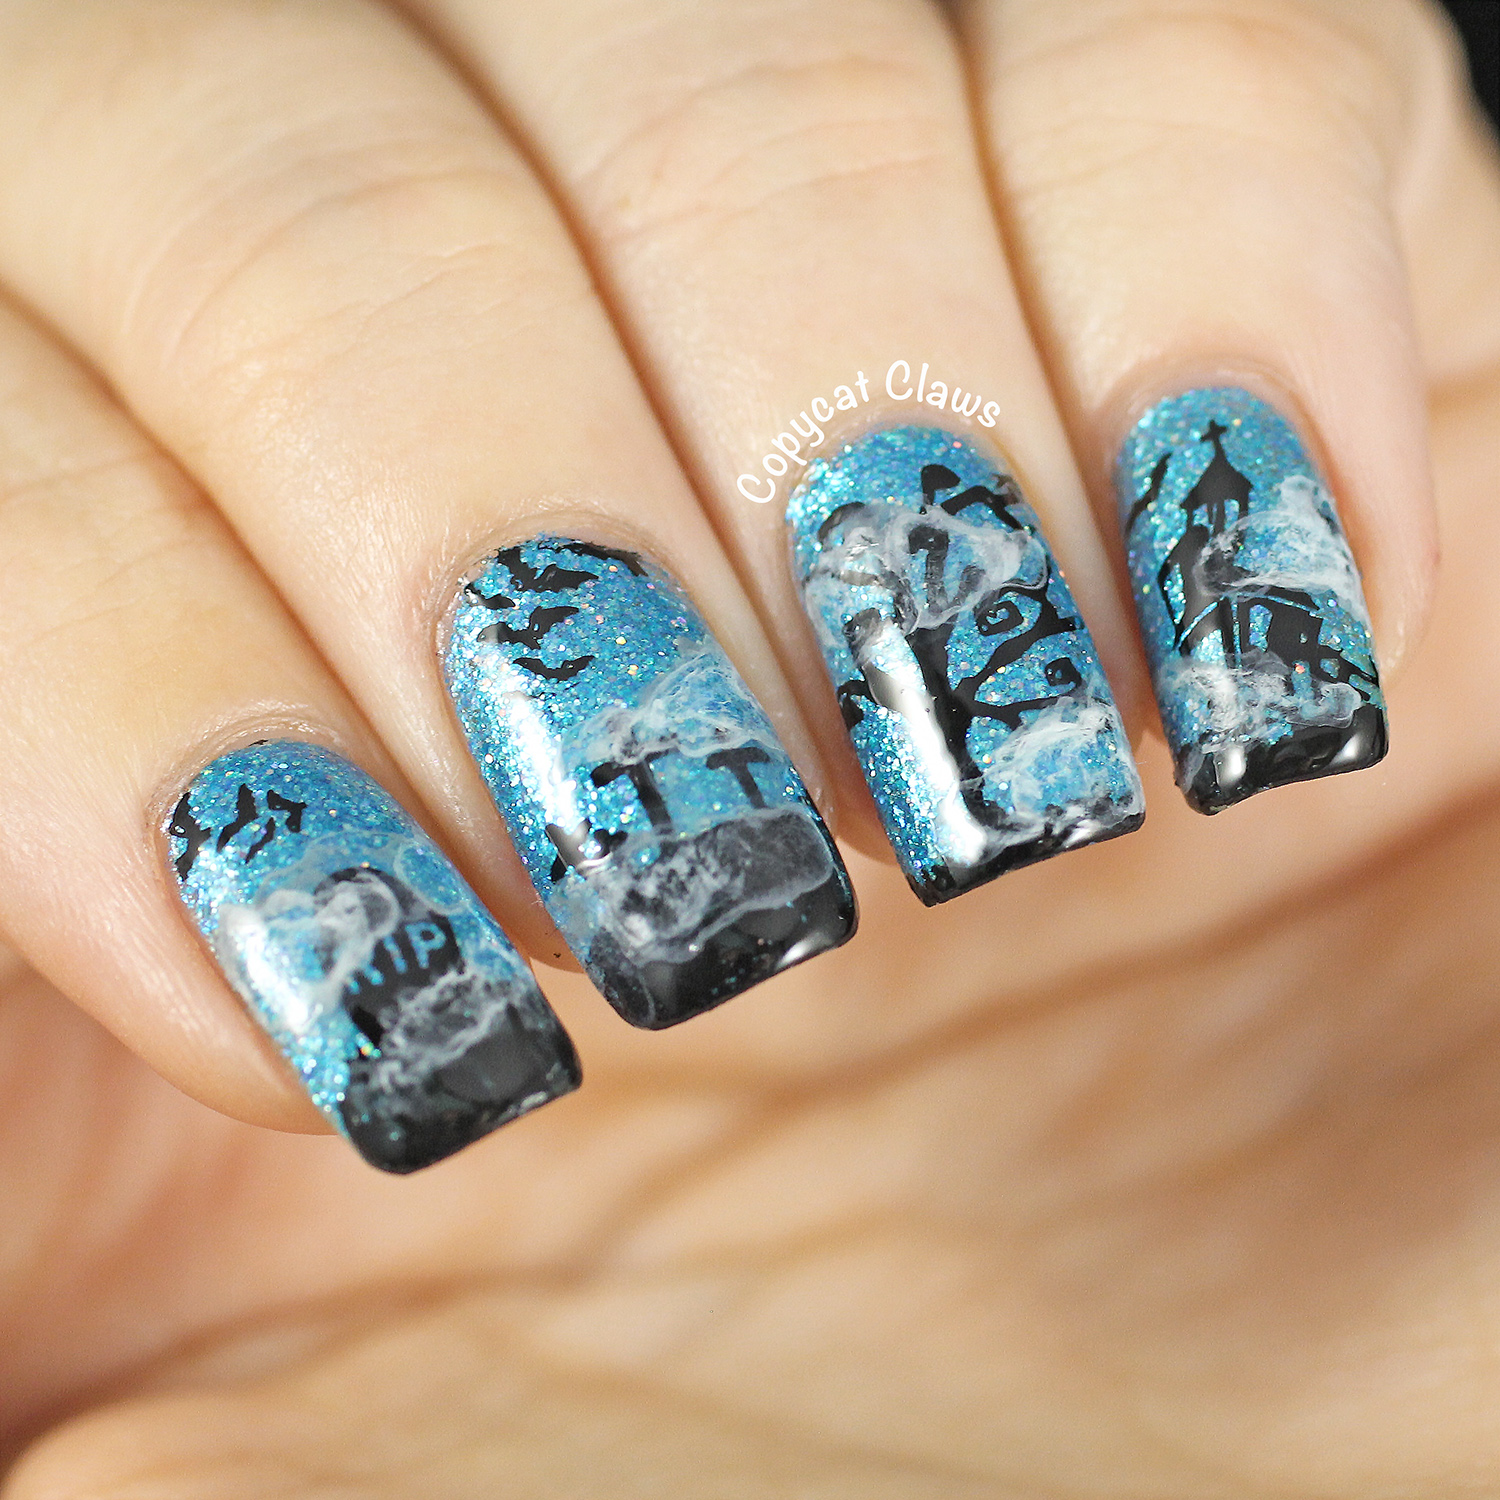 Copycat Claws: Sunday Stamping - Halloween Nails